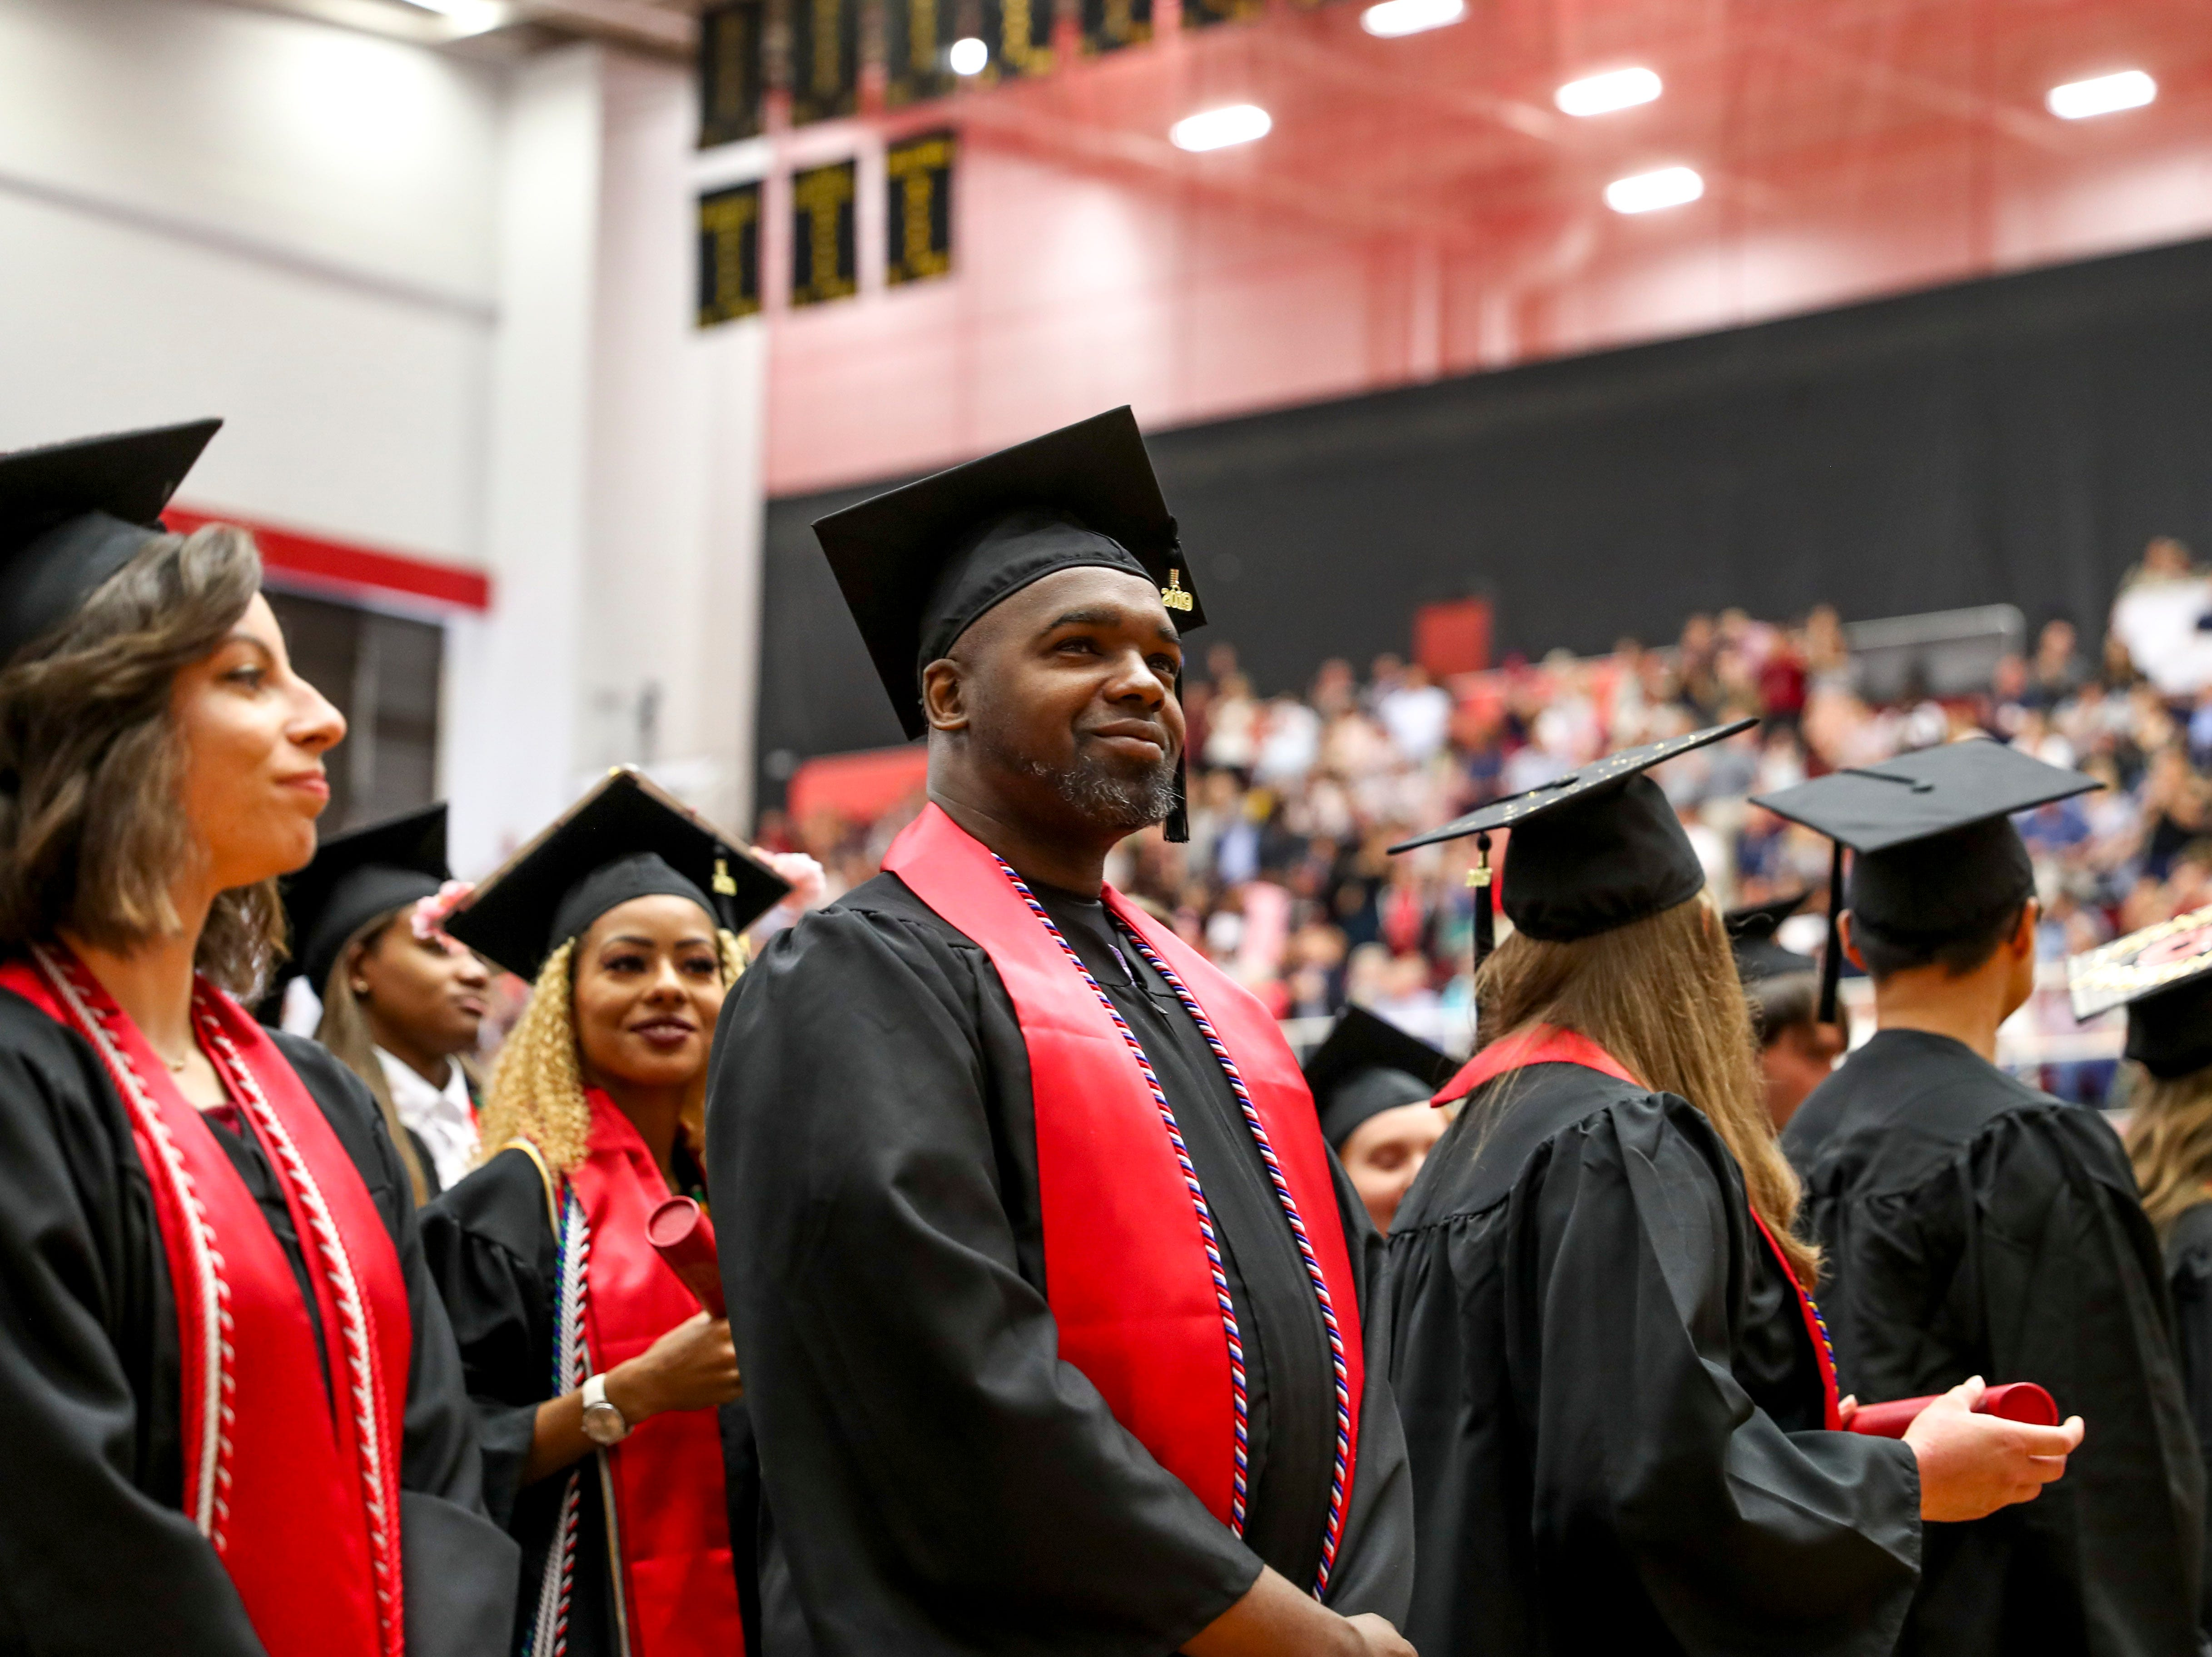 APSU students look out across family and friends that gathered to celebrate their graduation at the Austin Peay spring commencement ceremony 2019 for College of Business and College of STEM at Winfield Dunn Center in Clarksville, Tenn., on Friday, May 3, 2019.